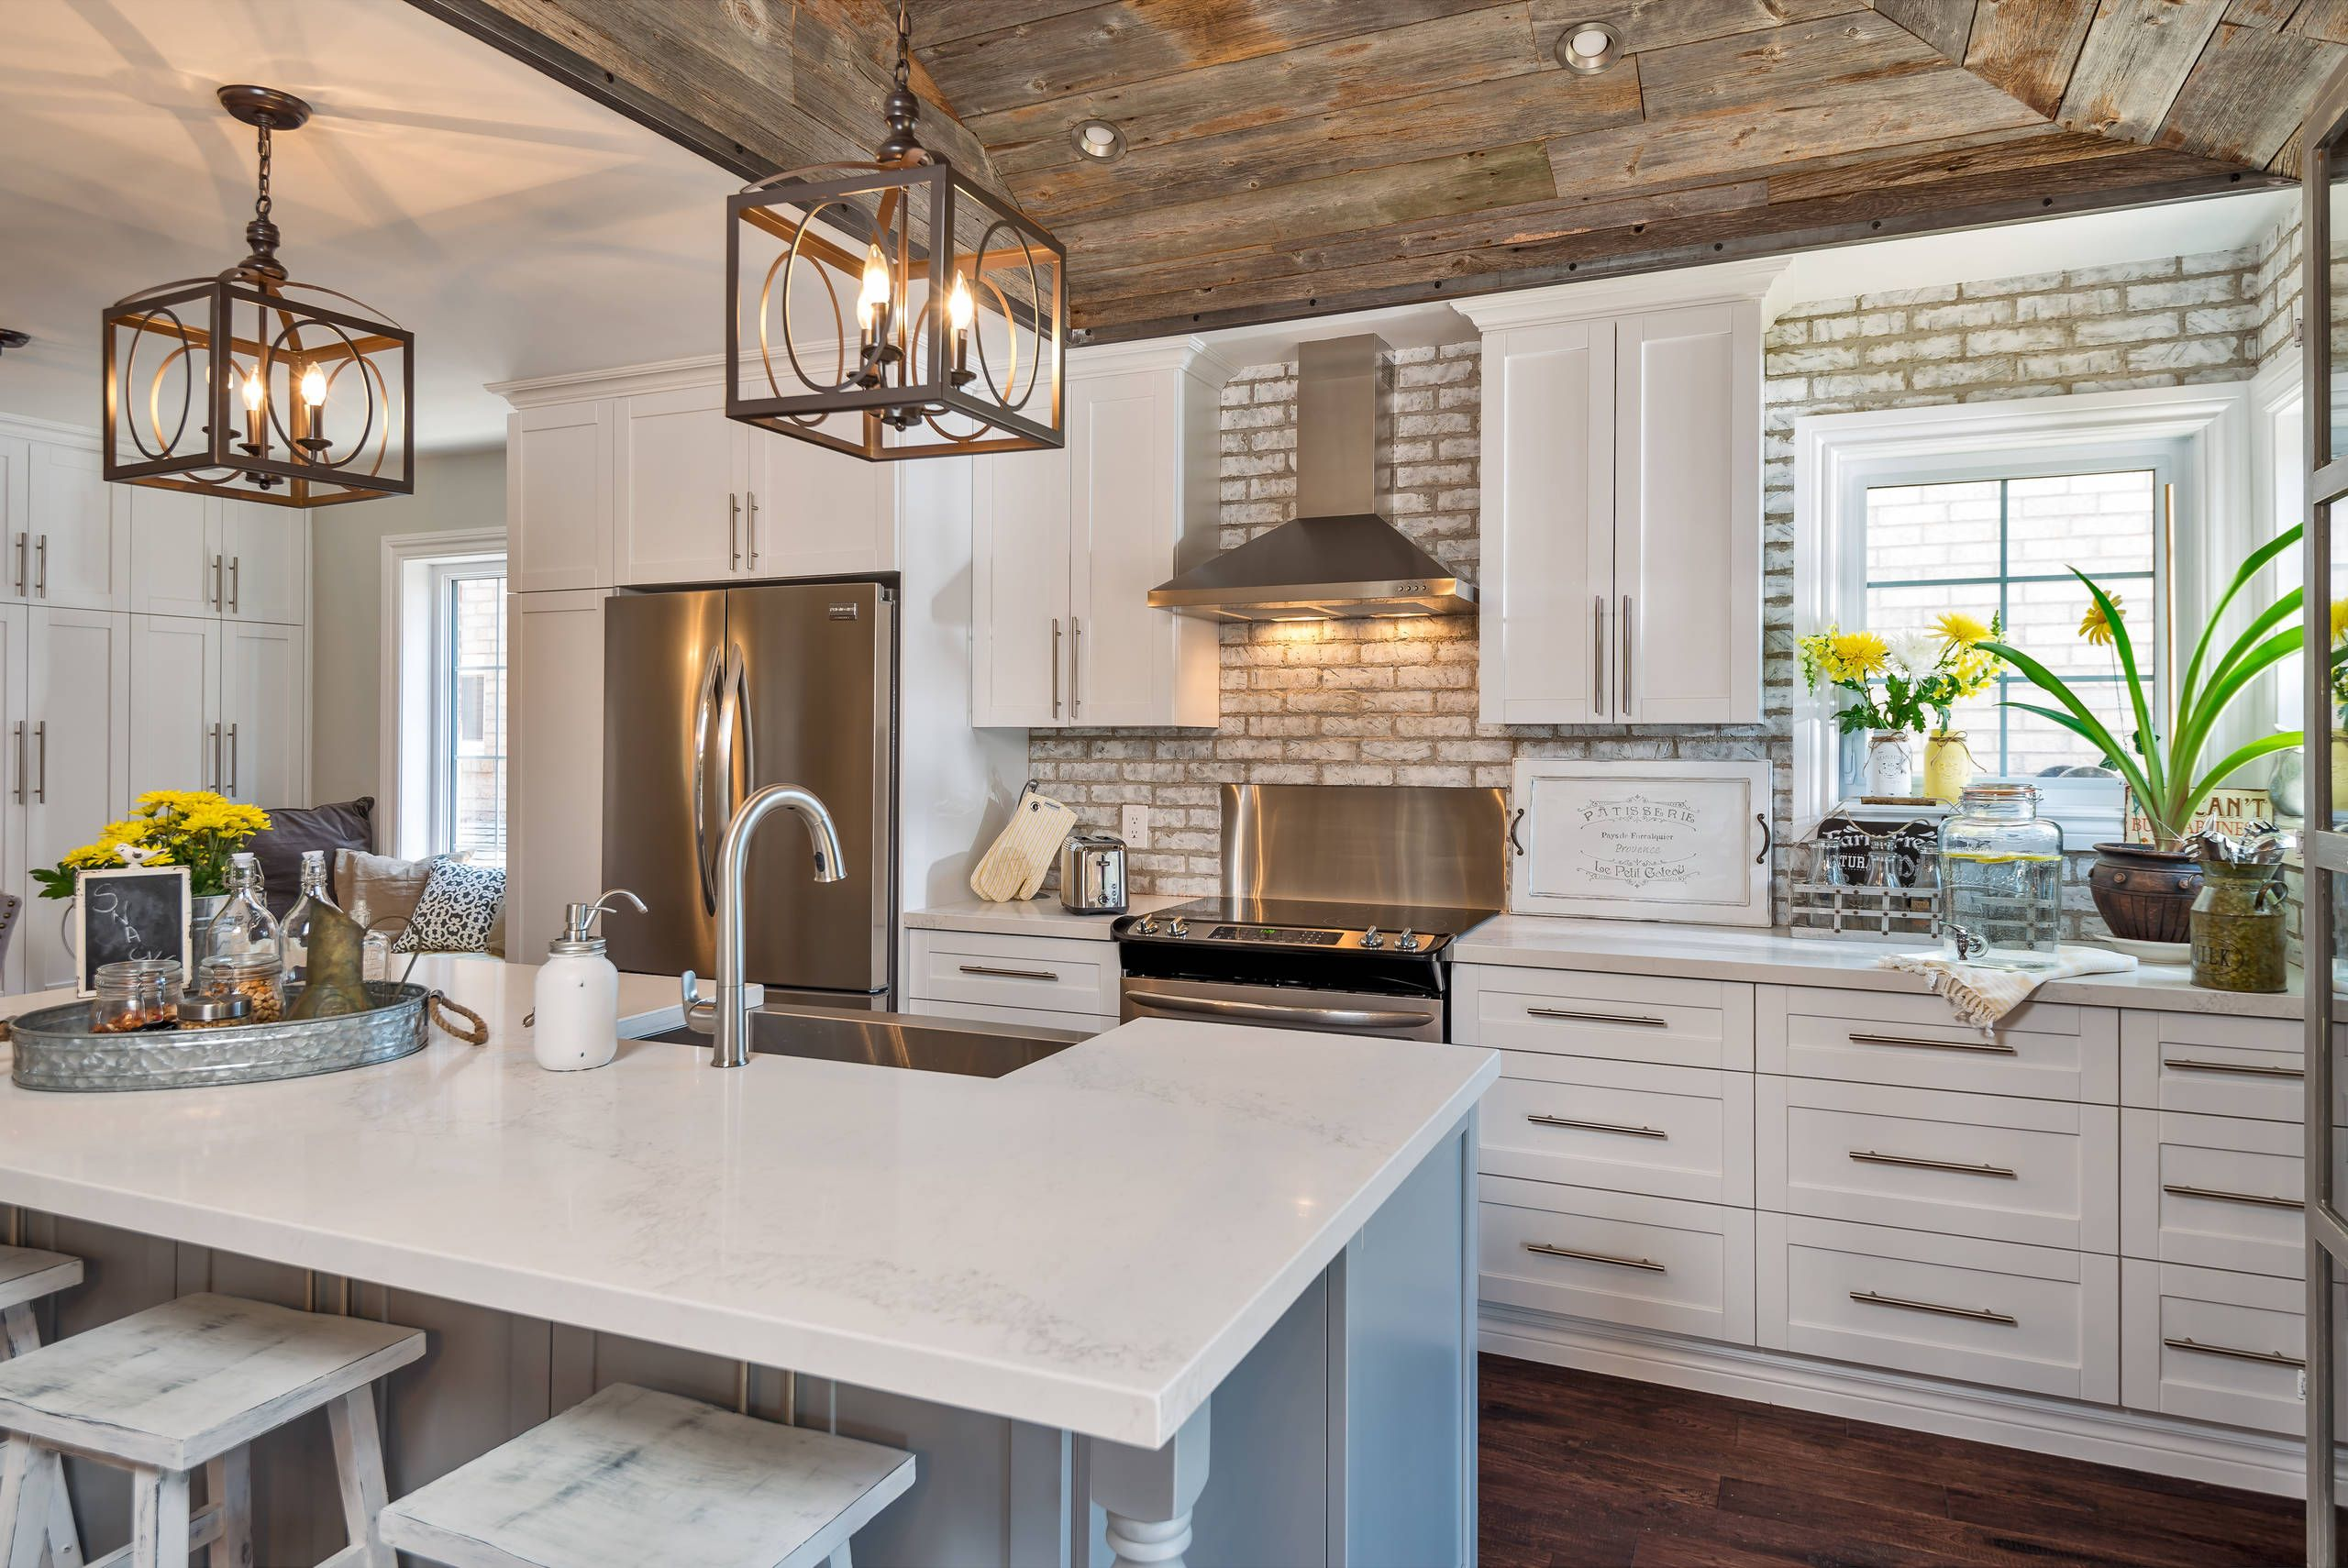 35 shabby chic kitchen designs and ideas shabby chic